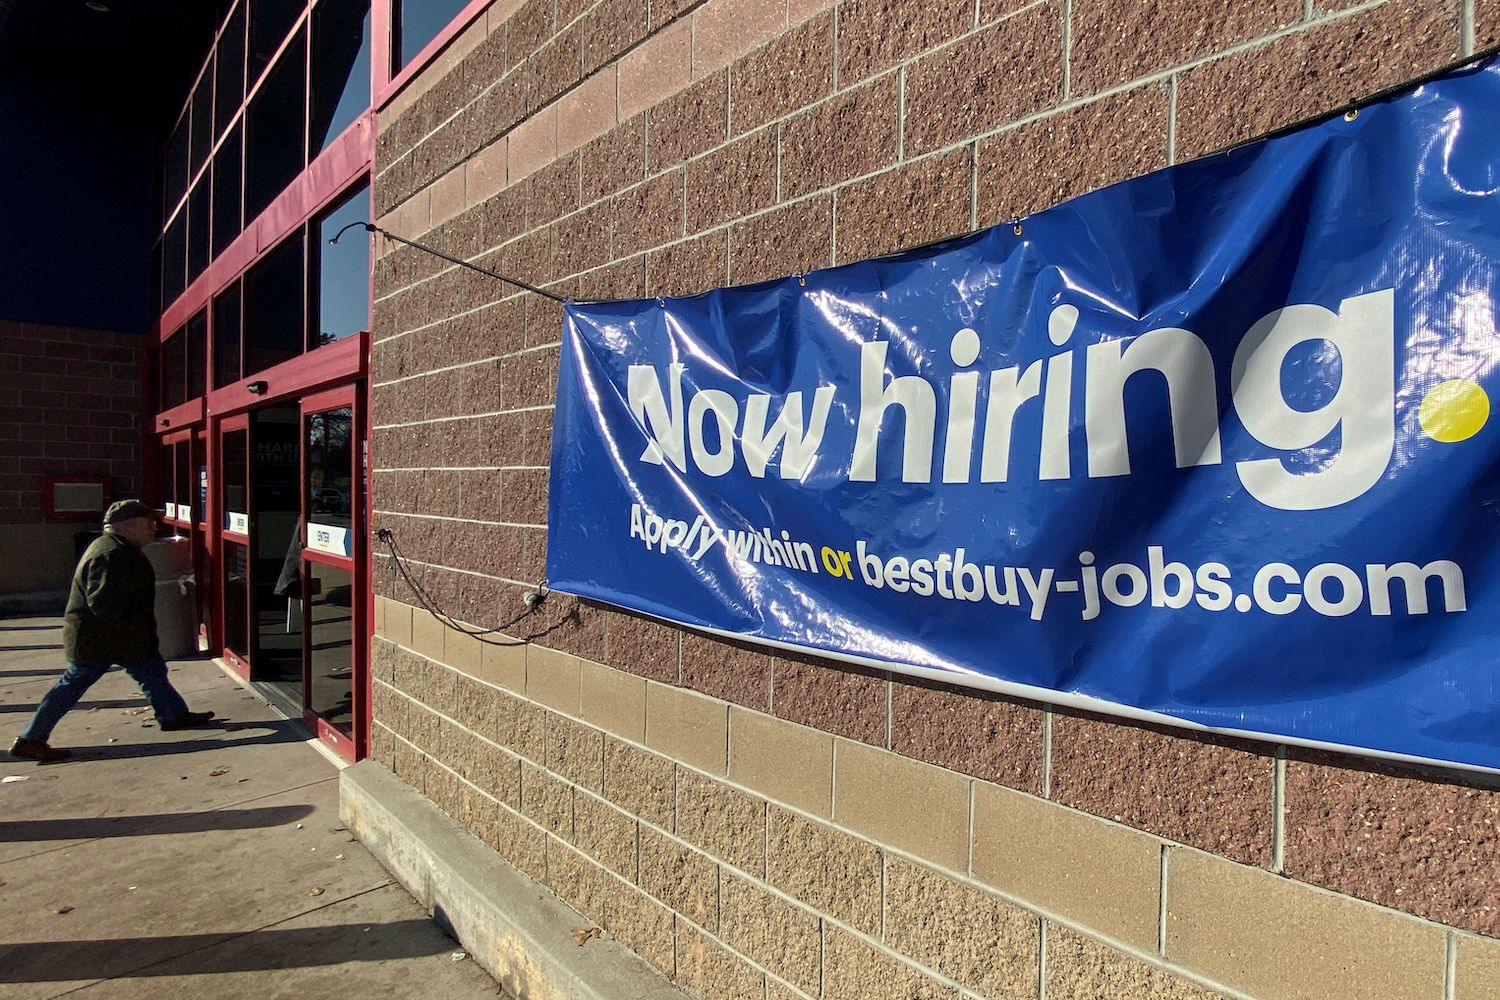 Latest U.S. jobs report shows resilience of job market